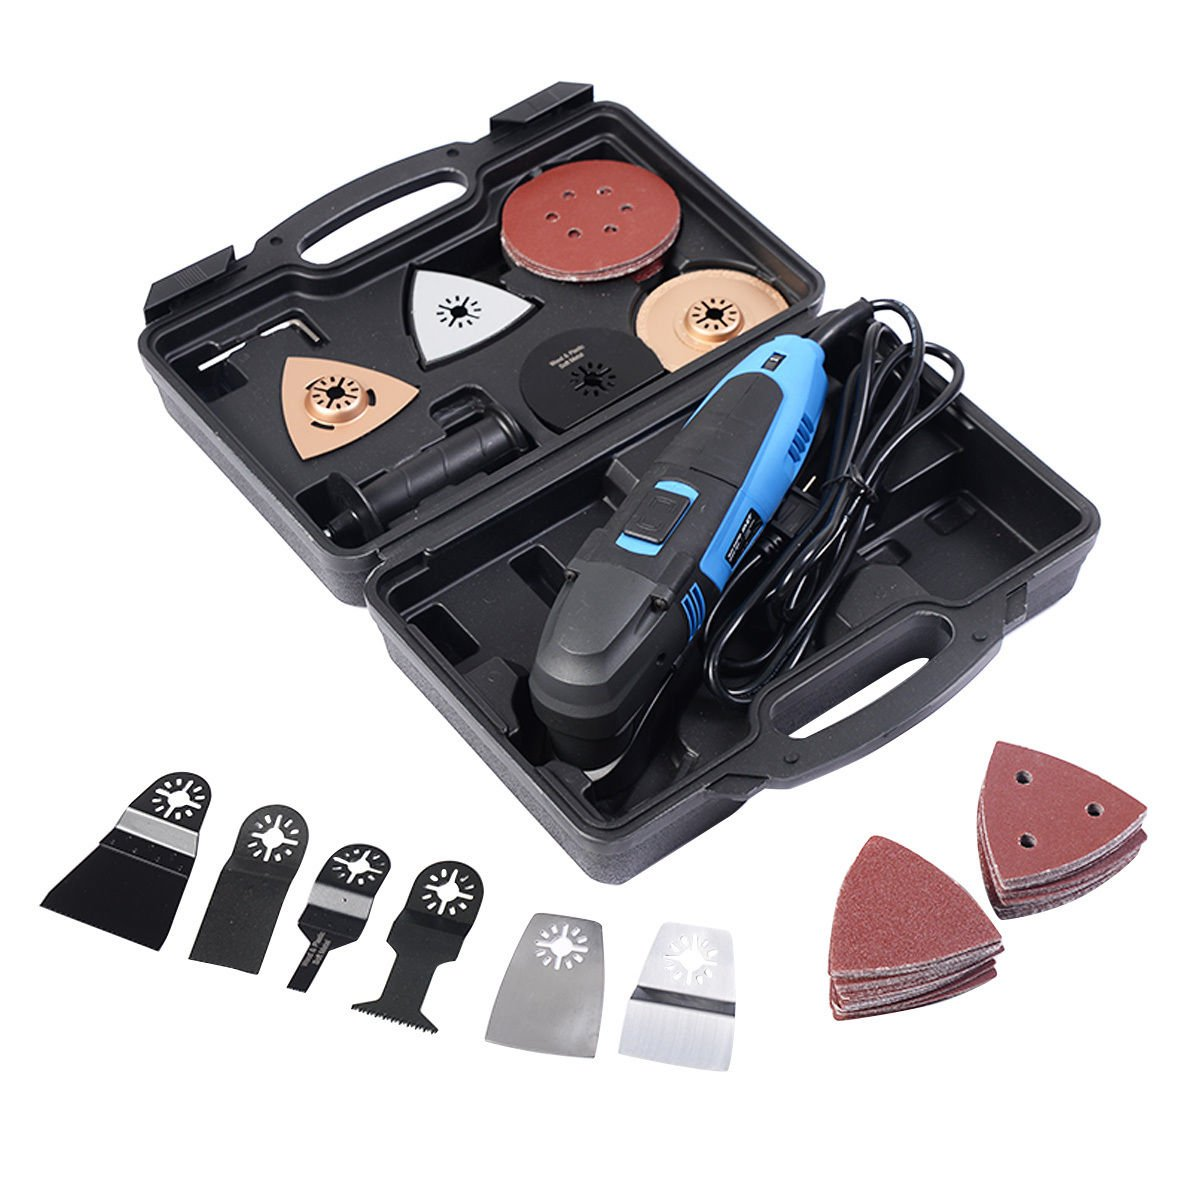 Goplus 80PCS Multi-Function oscillating multi tool saw set For Wood Plastic Metal New